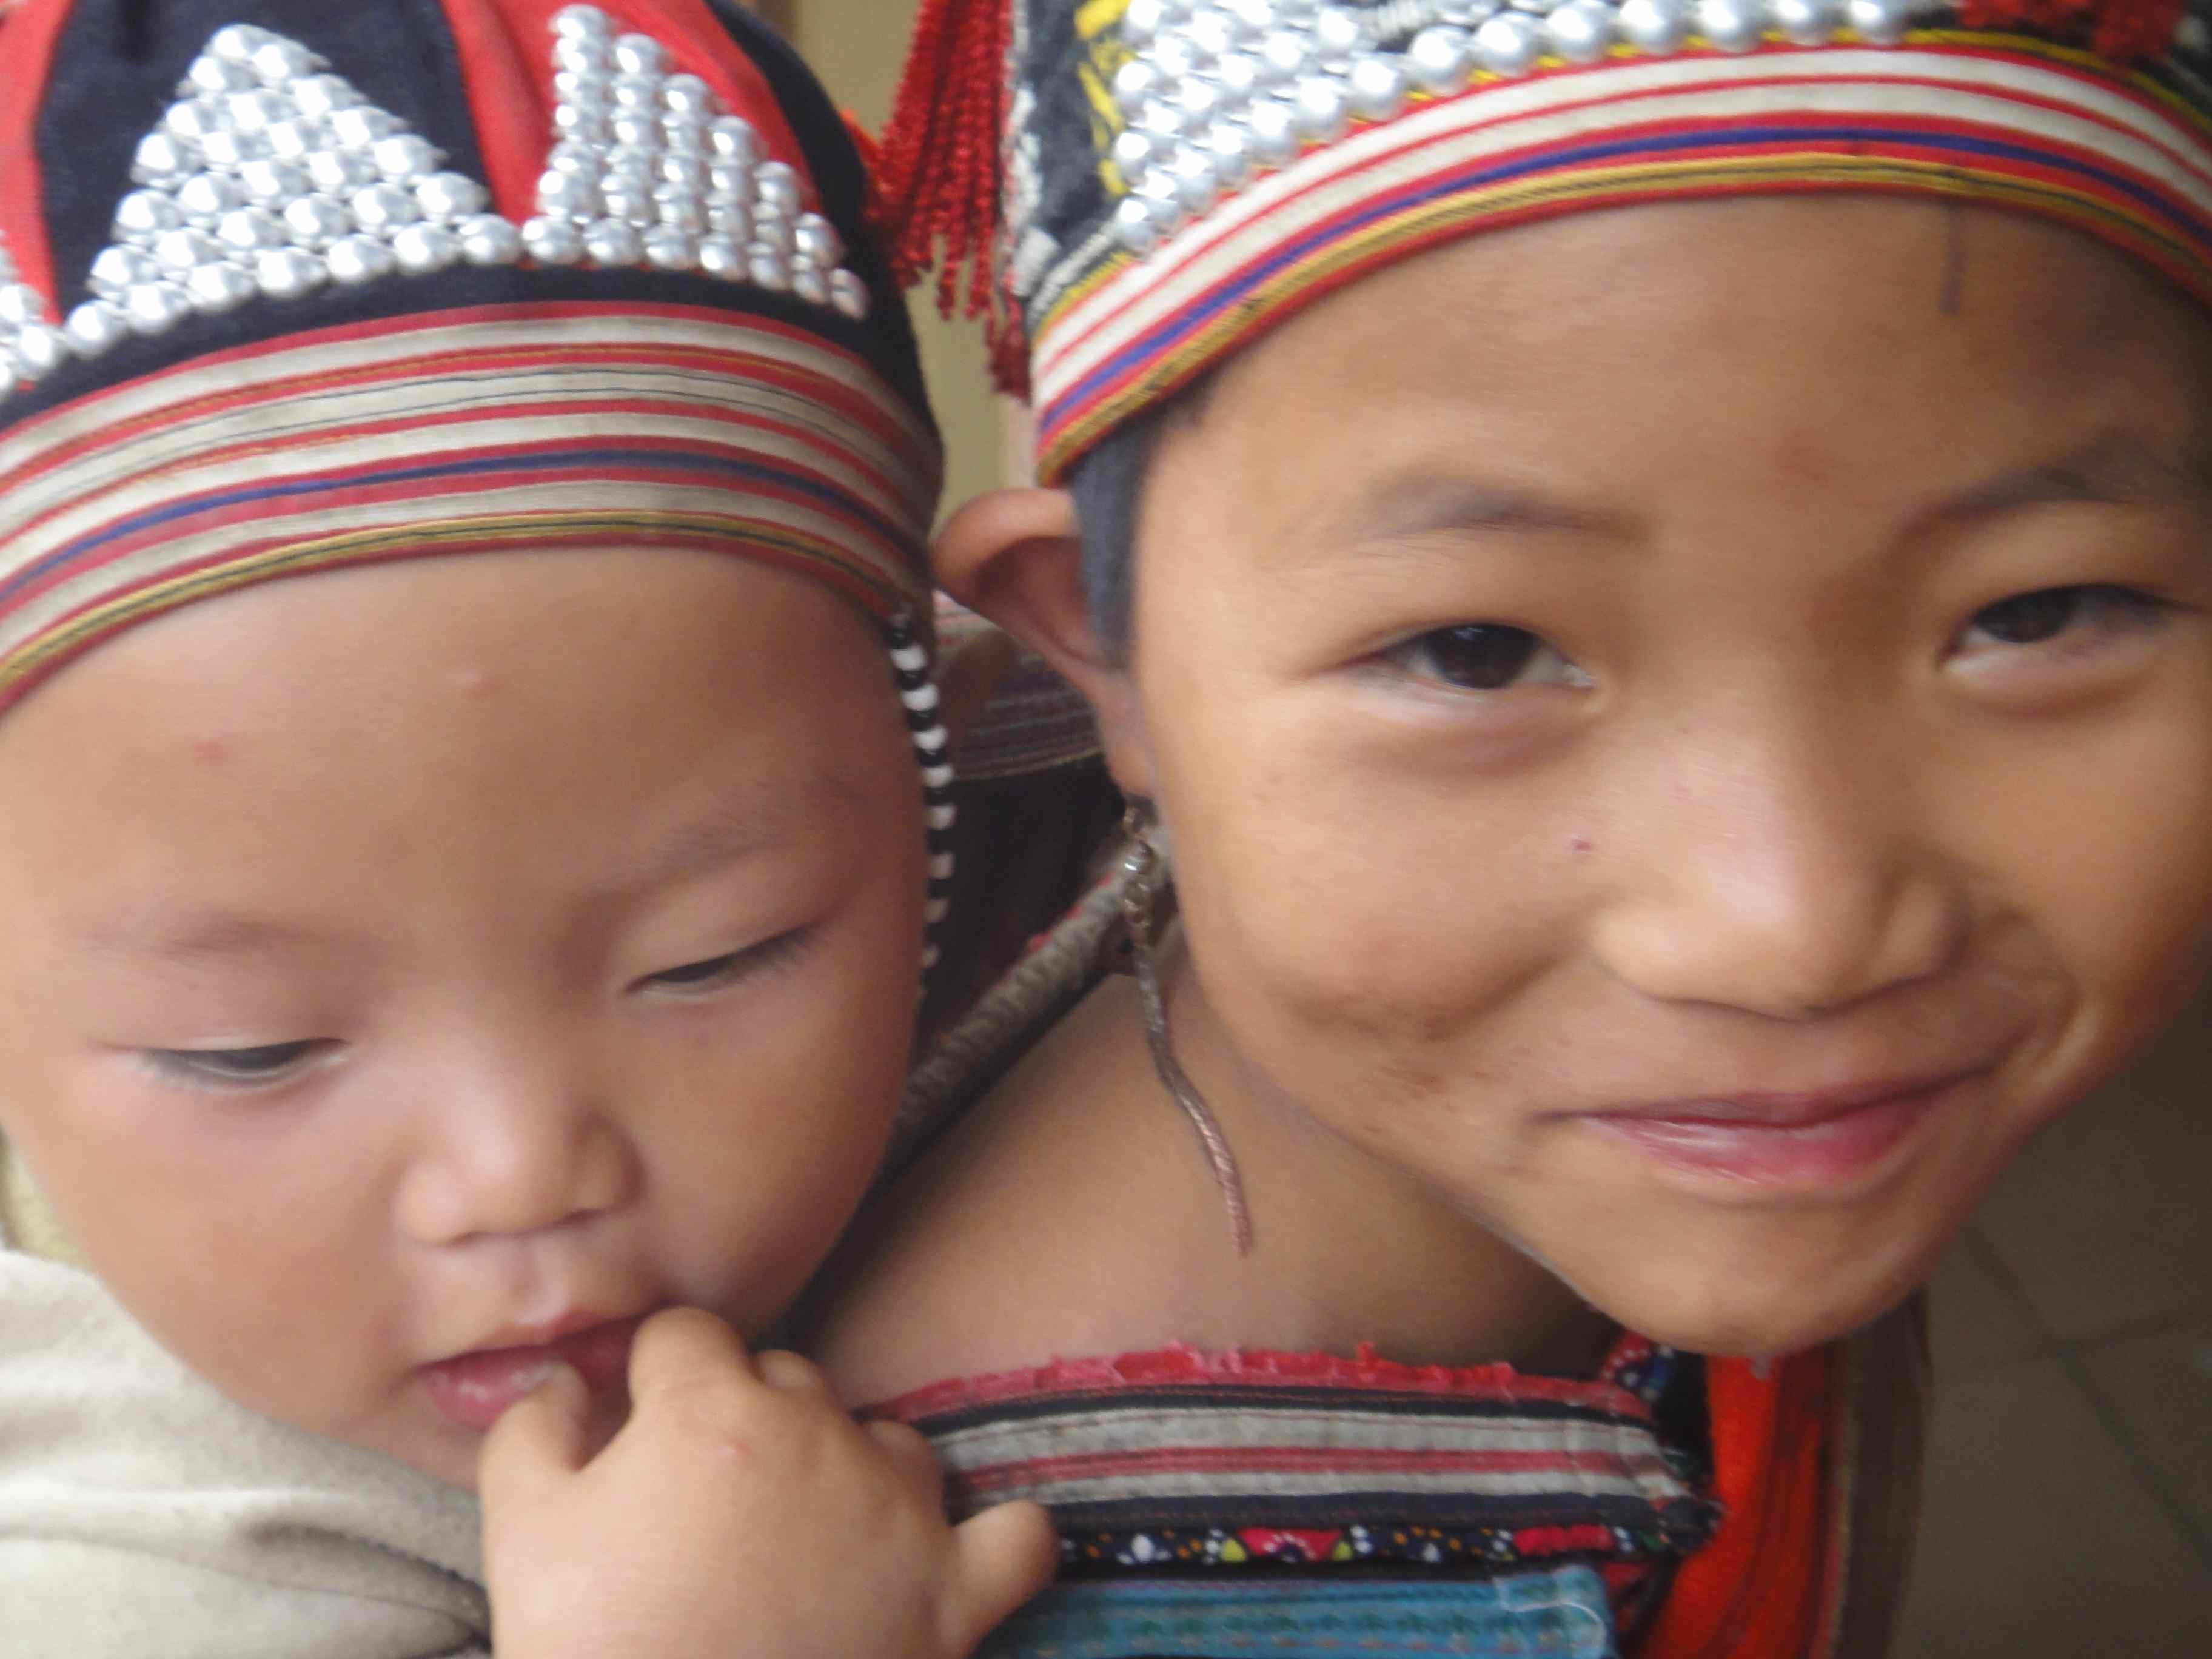 Hmong girl with her brother on back, smiling for the camera, Sapa, Vietnam.